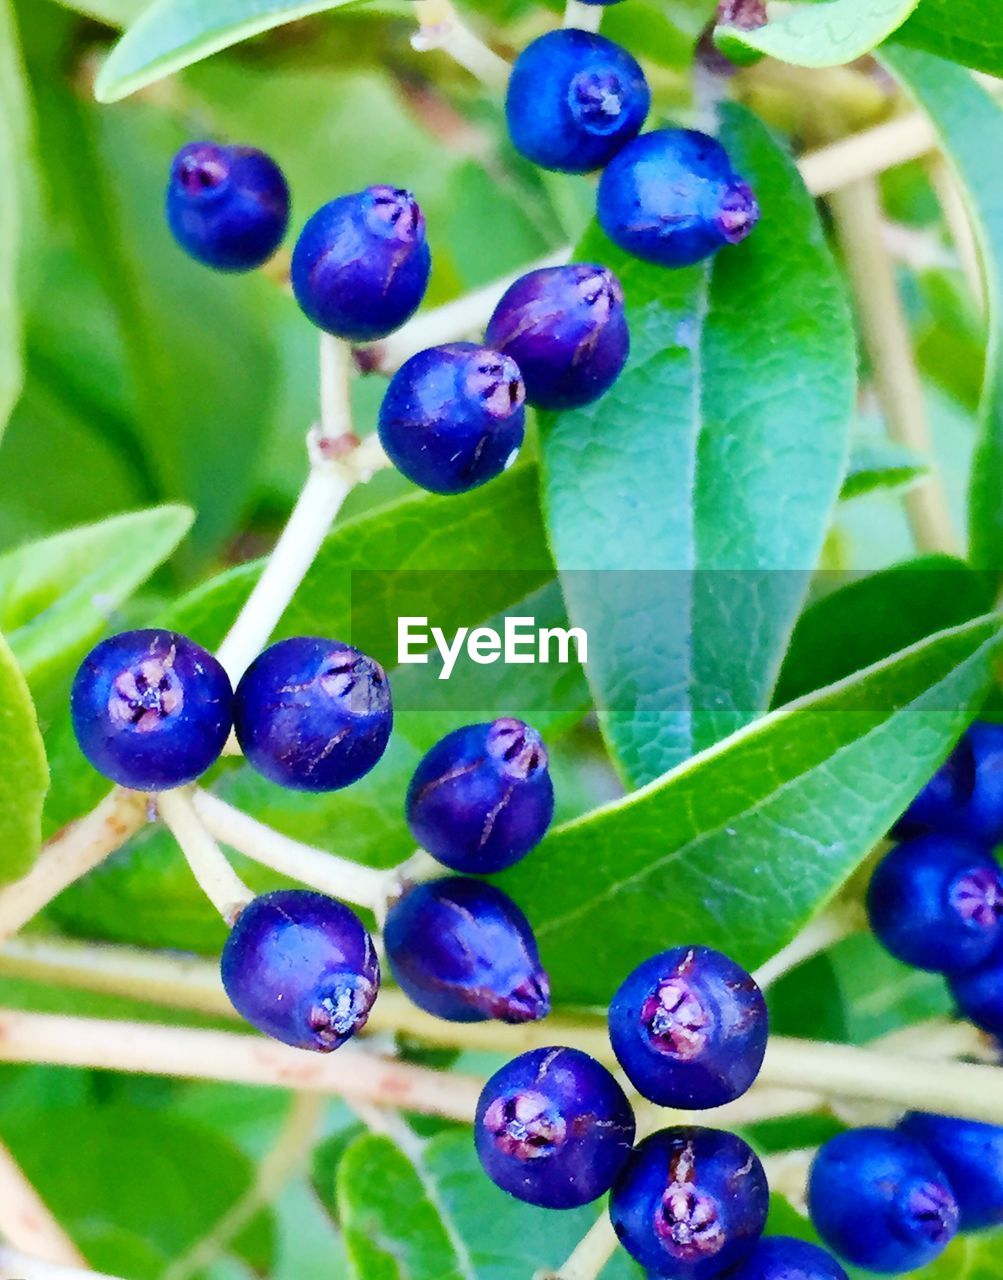 Close-up of huckleberries growing on plants